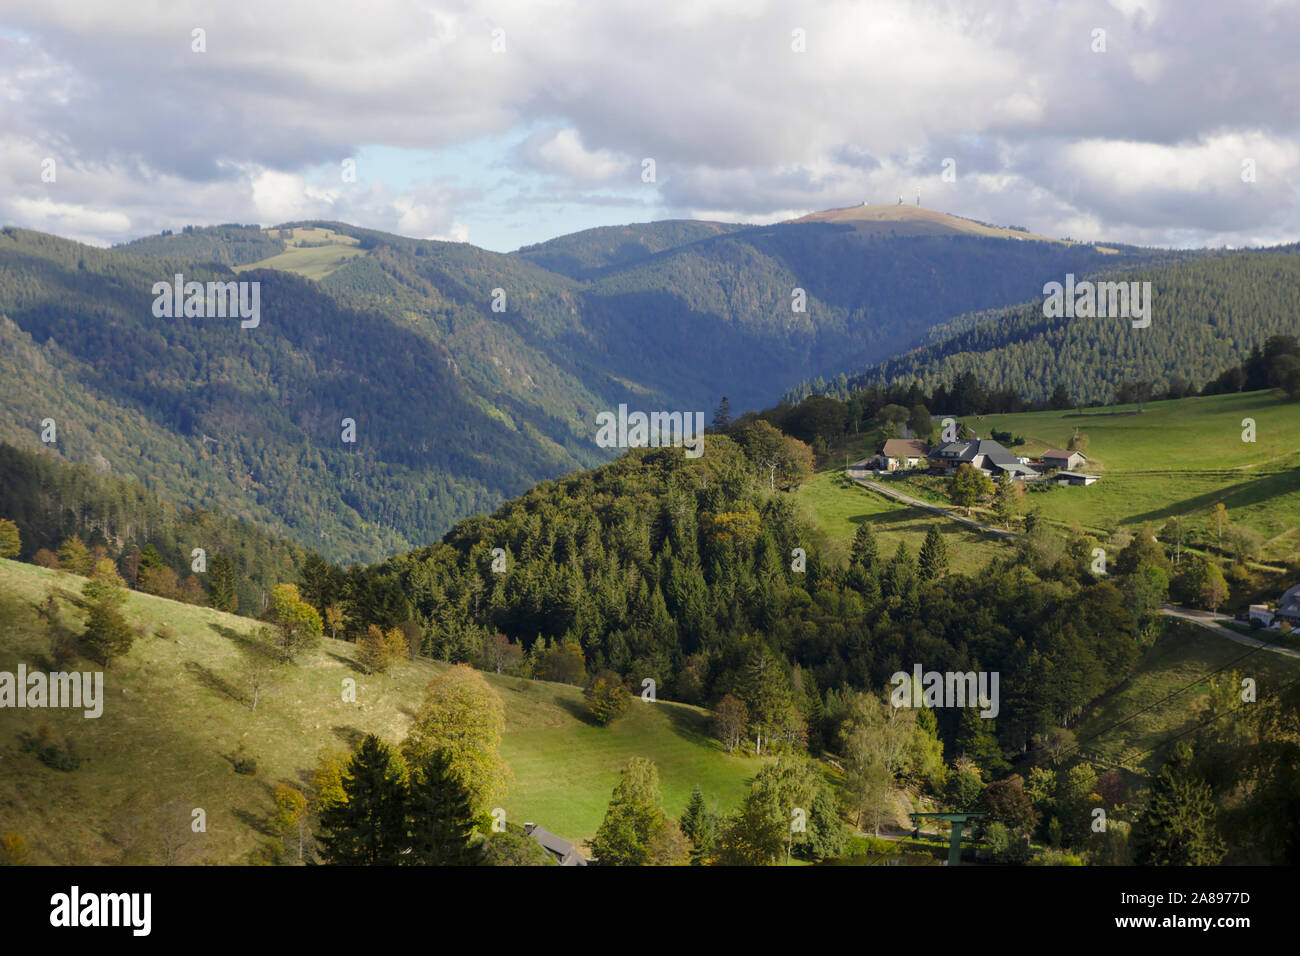 View from Schauinsland to Feldberg, Black Forest, Germany Stock Photo